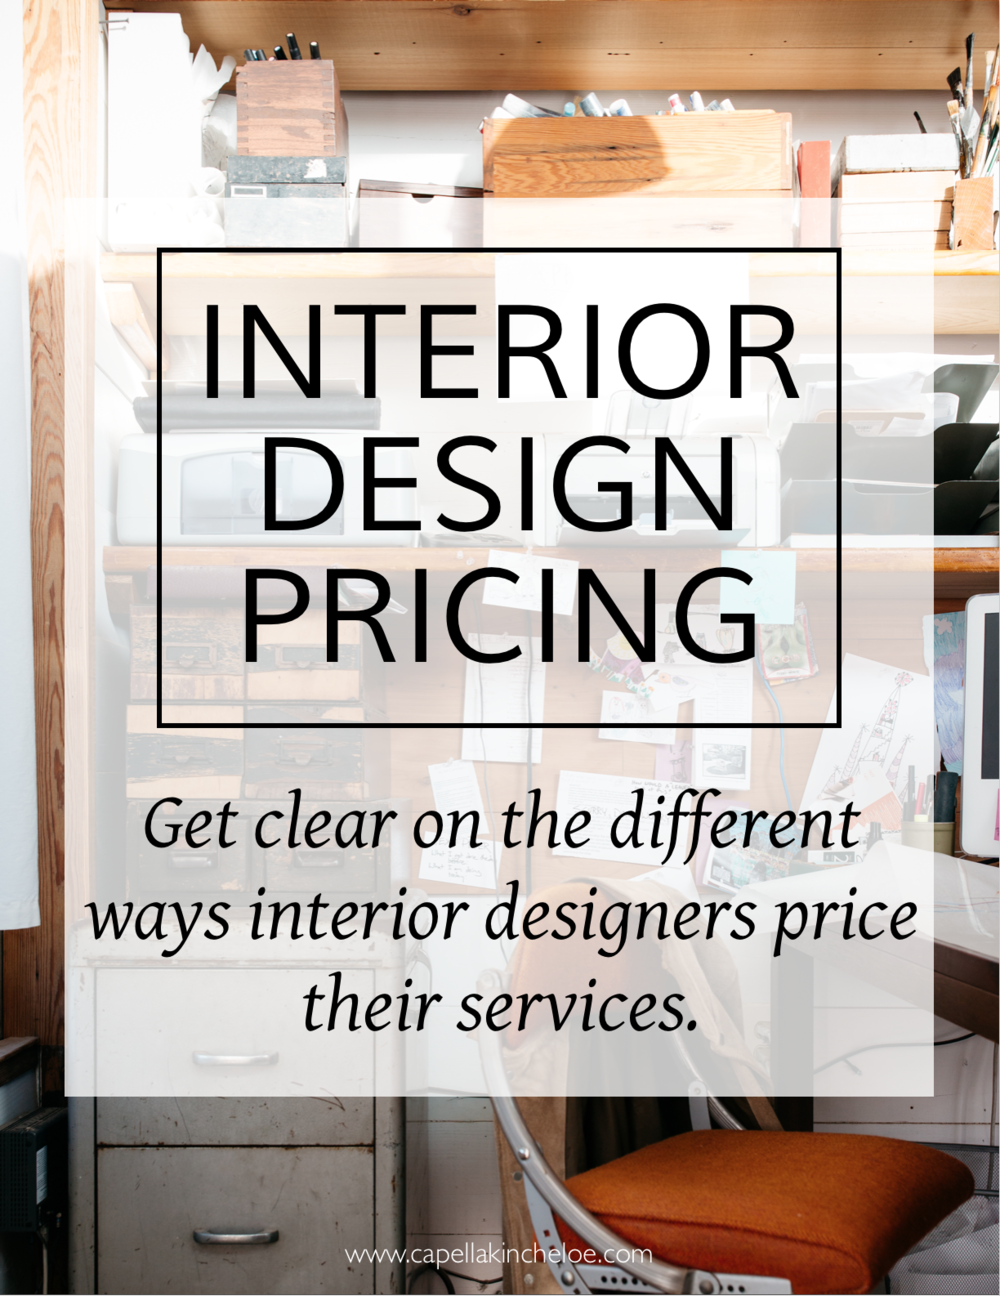 Pricing Interior Design Services Can Be Confusing. U0026nbsp;This Article  Clears Up All The